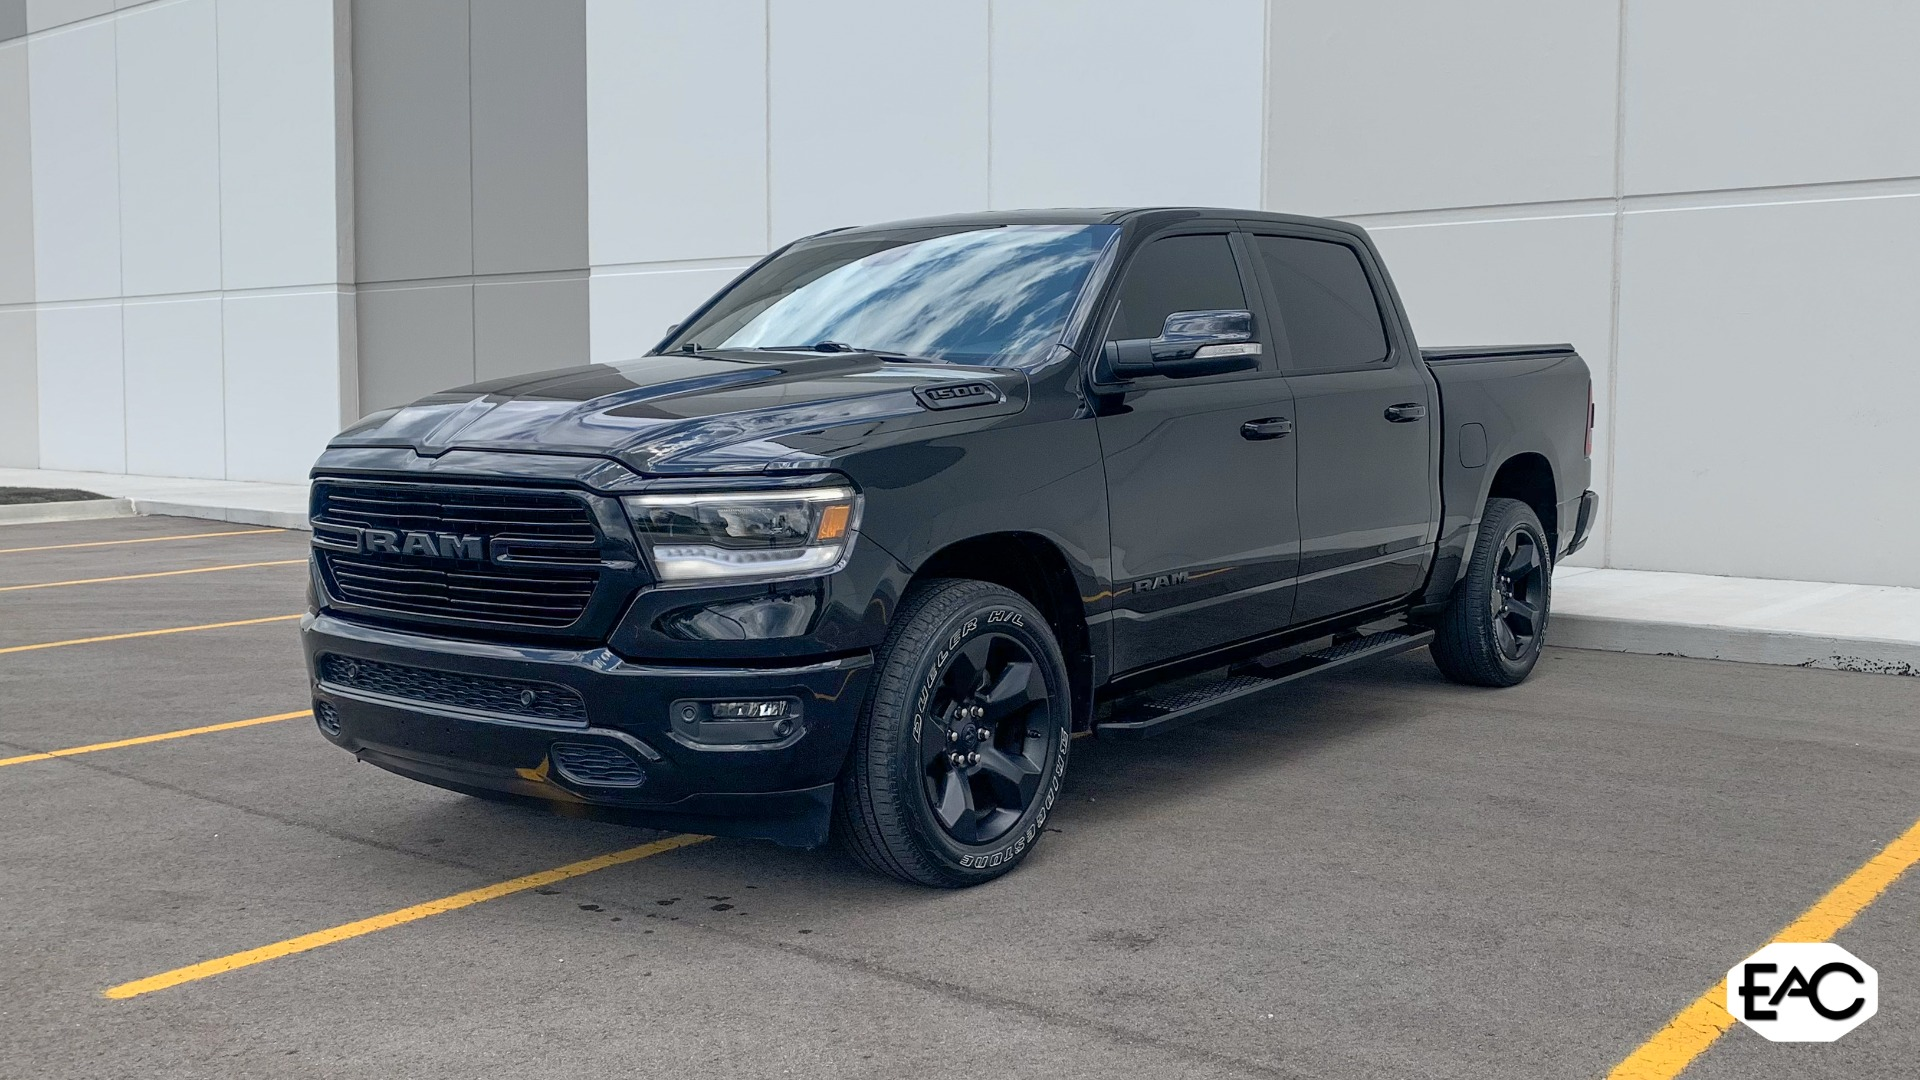 Used 2019 Ram Ram Pickup 1500 Big Horn for sale $37,990 at Empire Auto Collection in Warren MI 48091 1